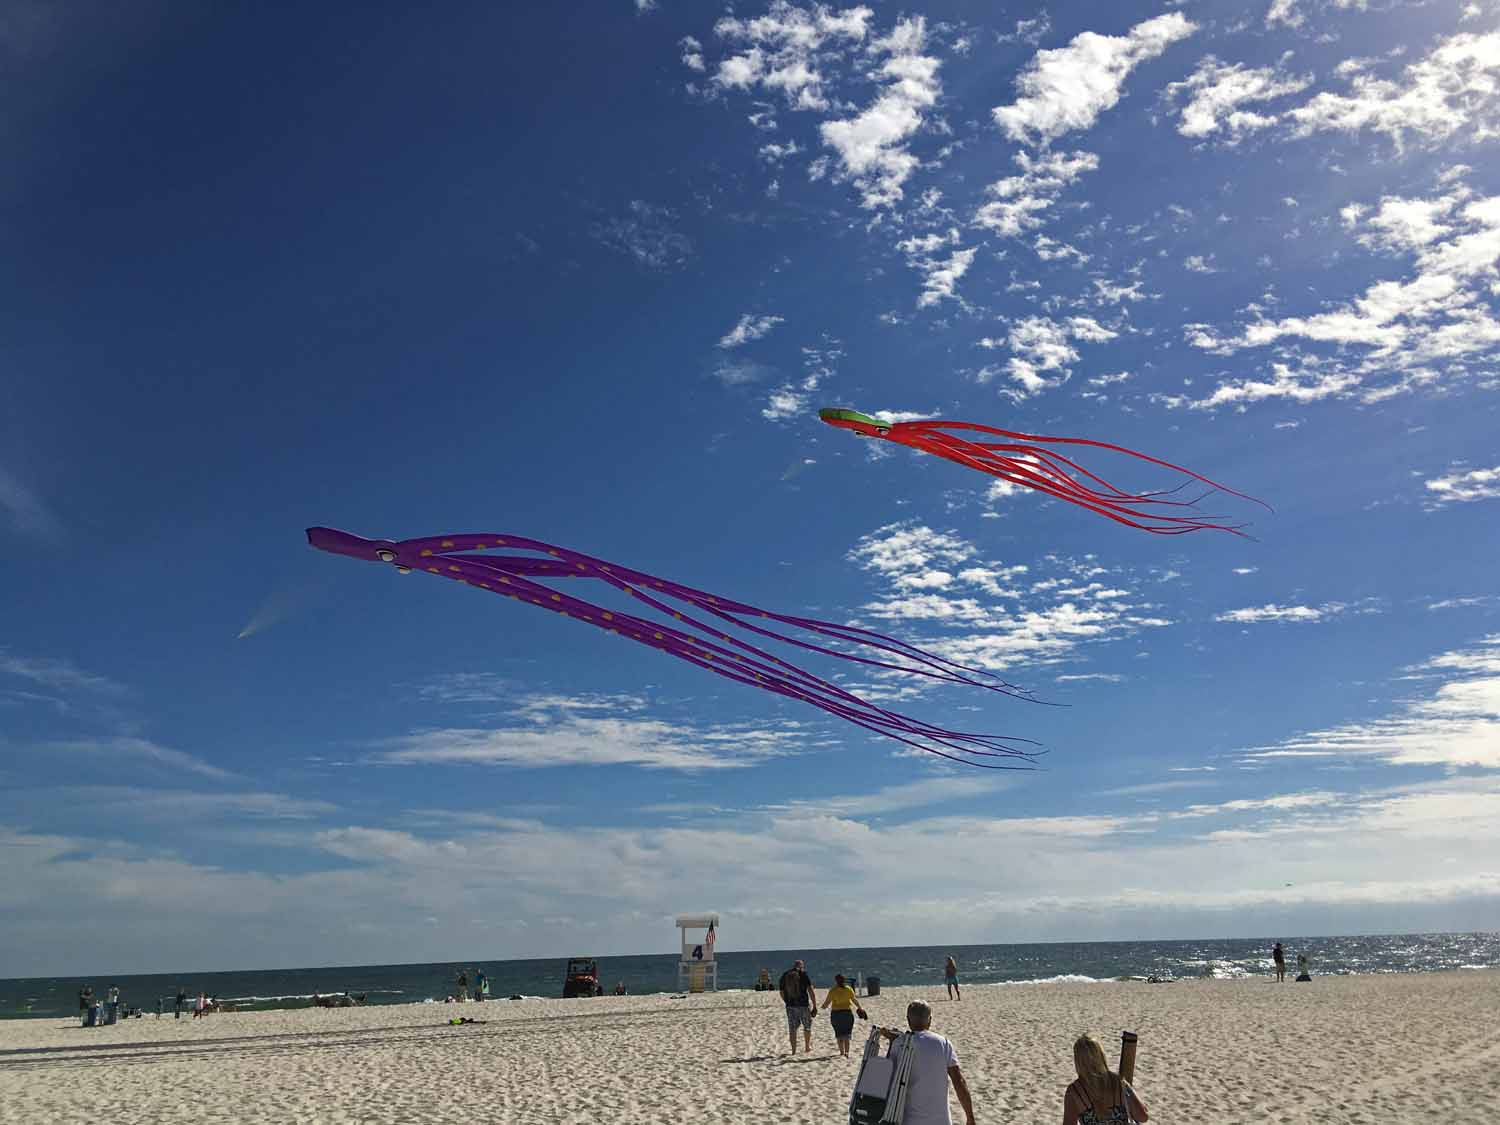 Loves these kites...looks like a great hobby - stay tuned as this may become the next diversion for us...